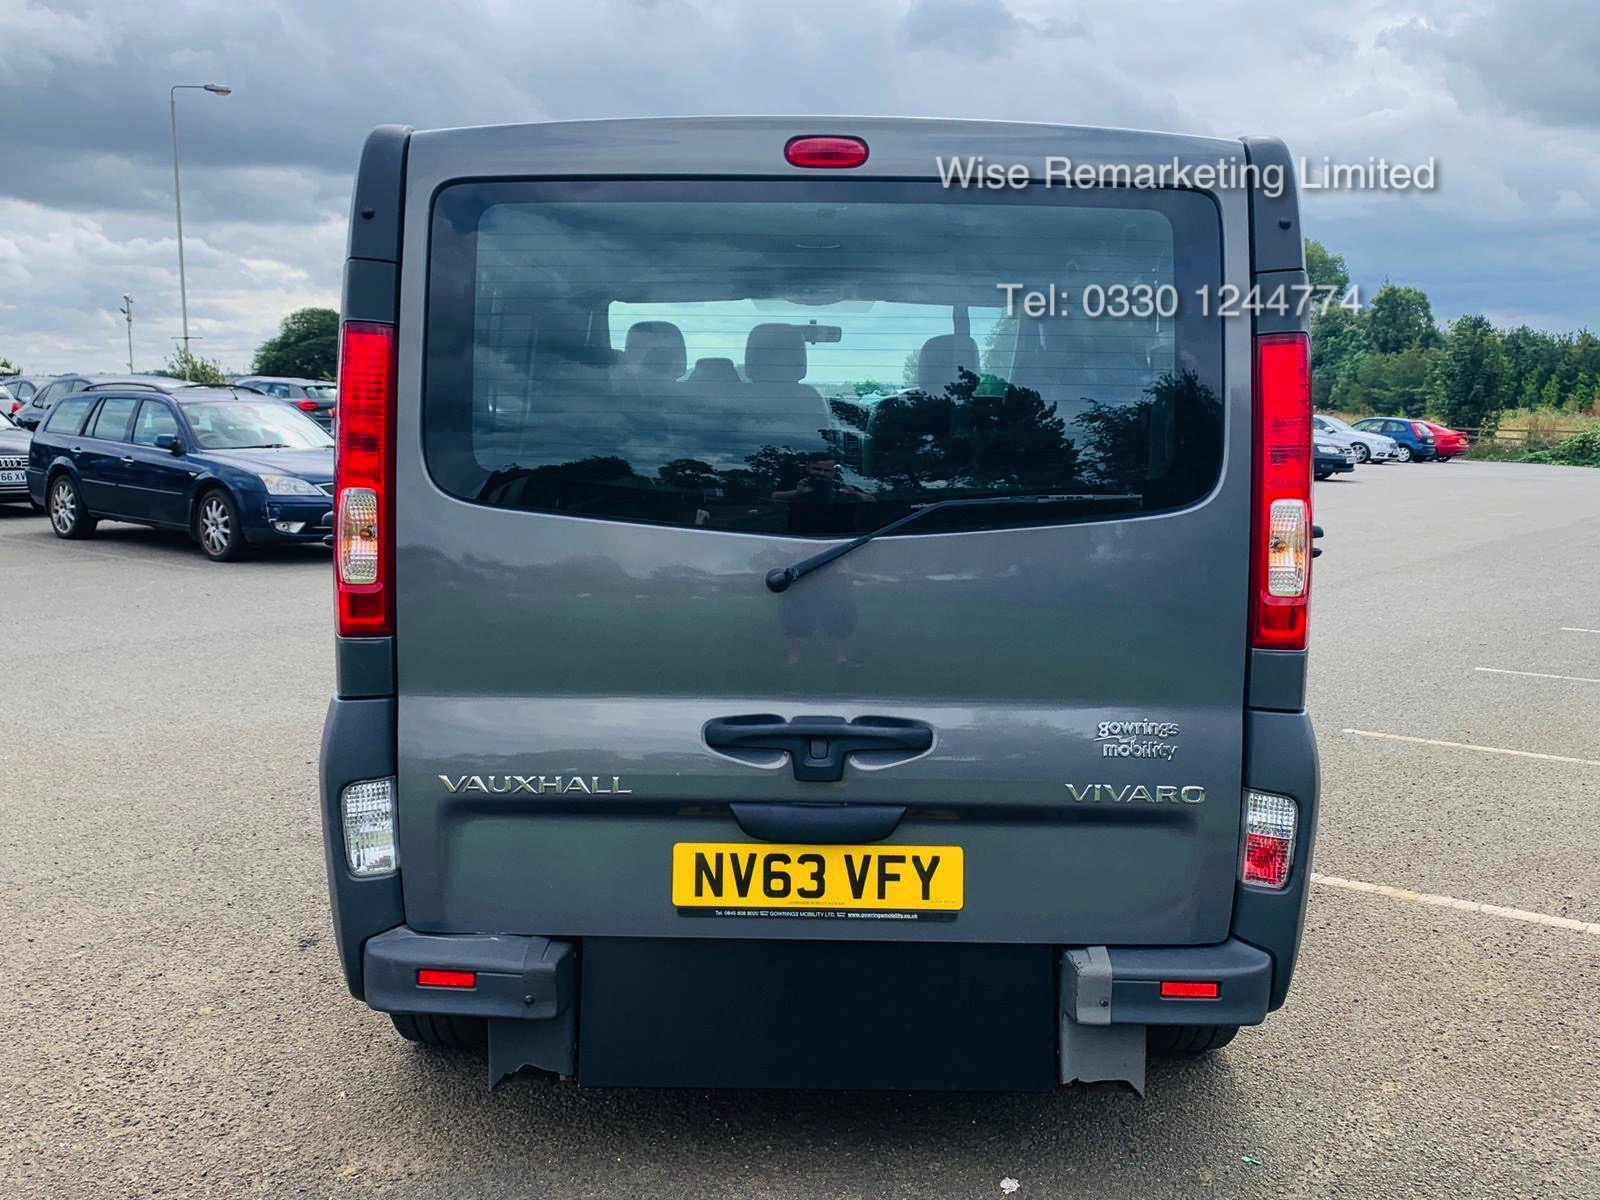 Vauxhall Vivaro 2.0 CDTI 2900 Minibus - 2014 Model - Wheel Chair Access -1 Owner From New -History - Image 6 of 21